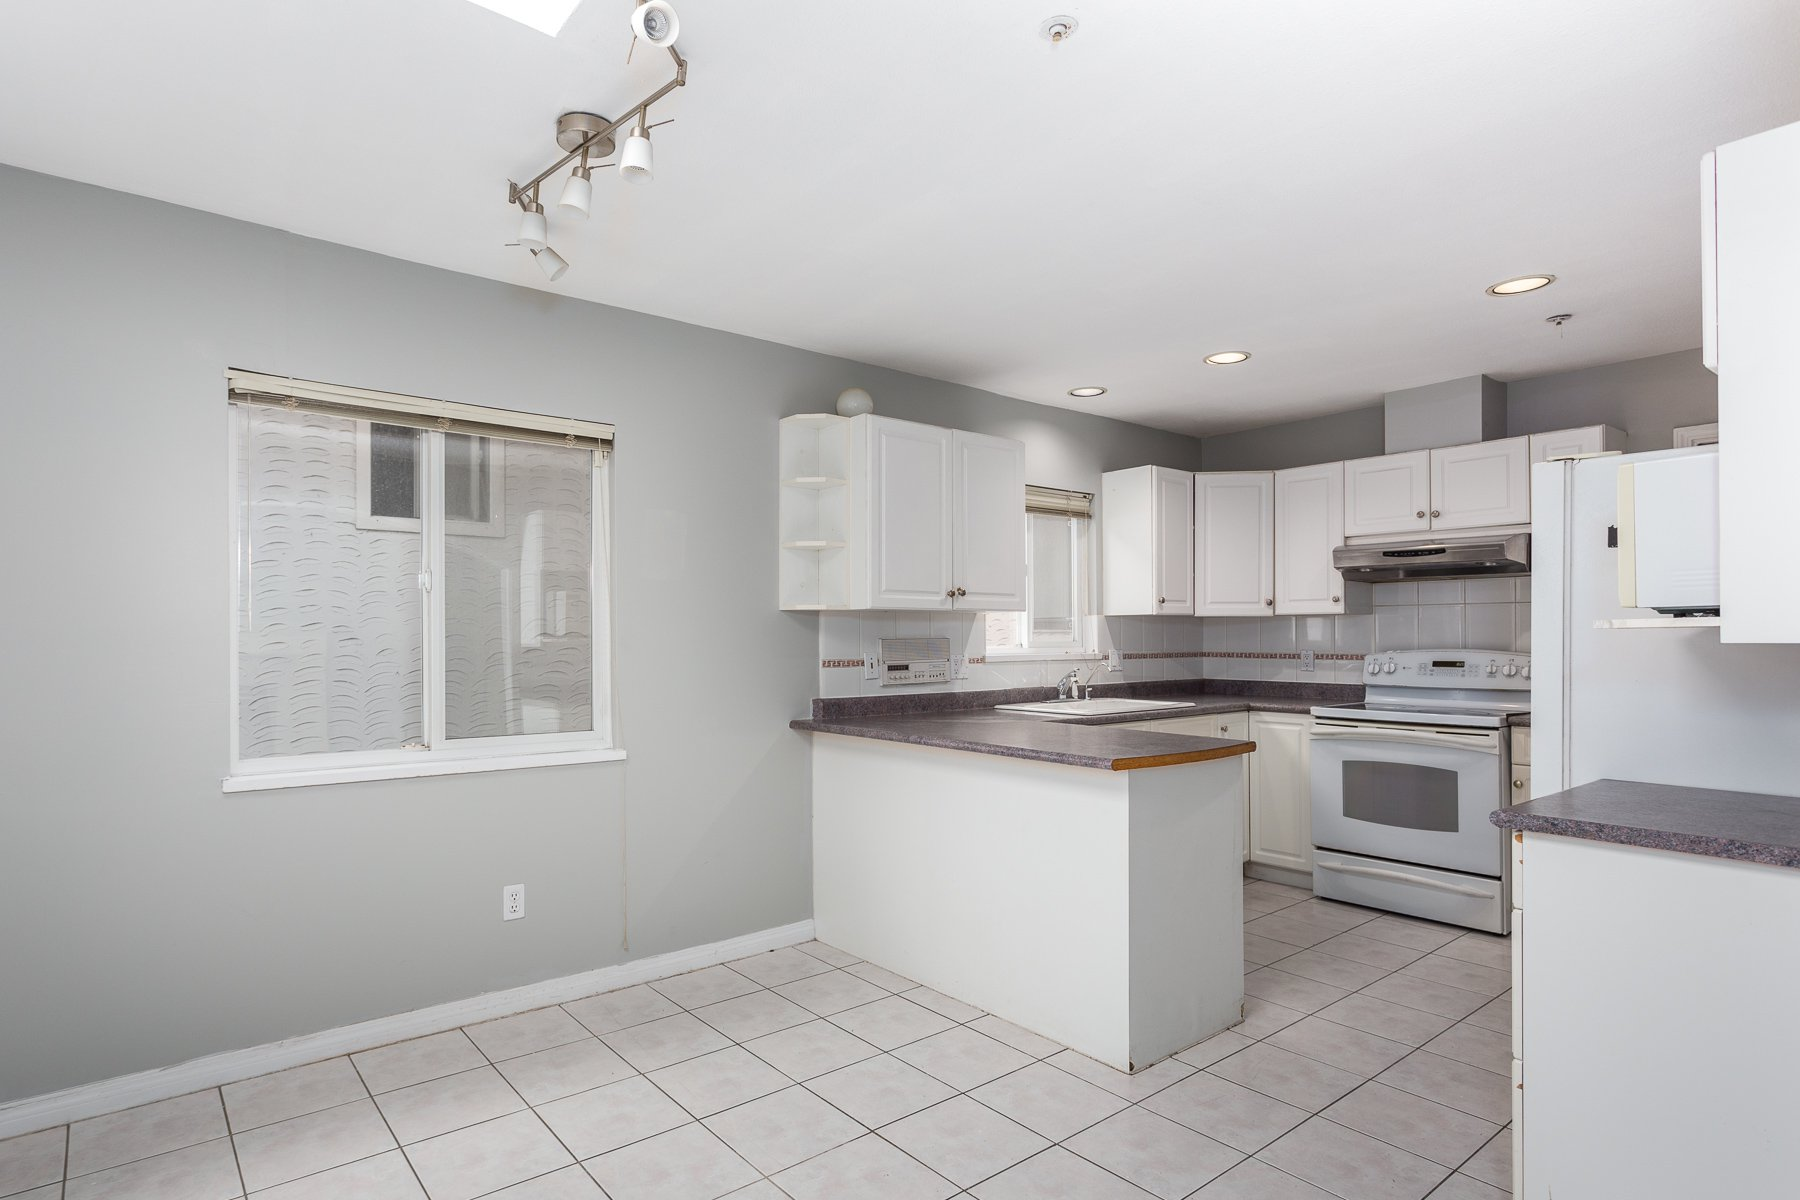 Photo 10: Photos: 3387 E. 2nd Ave in Vancouver: House for sale (Vancouver East)